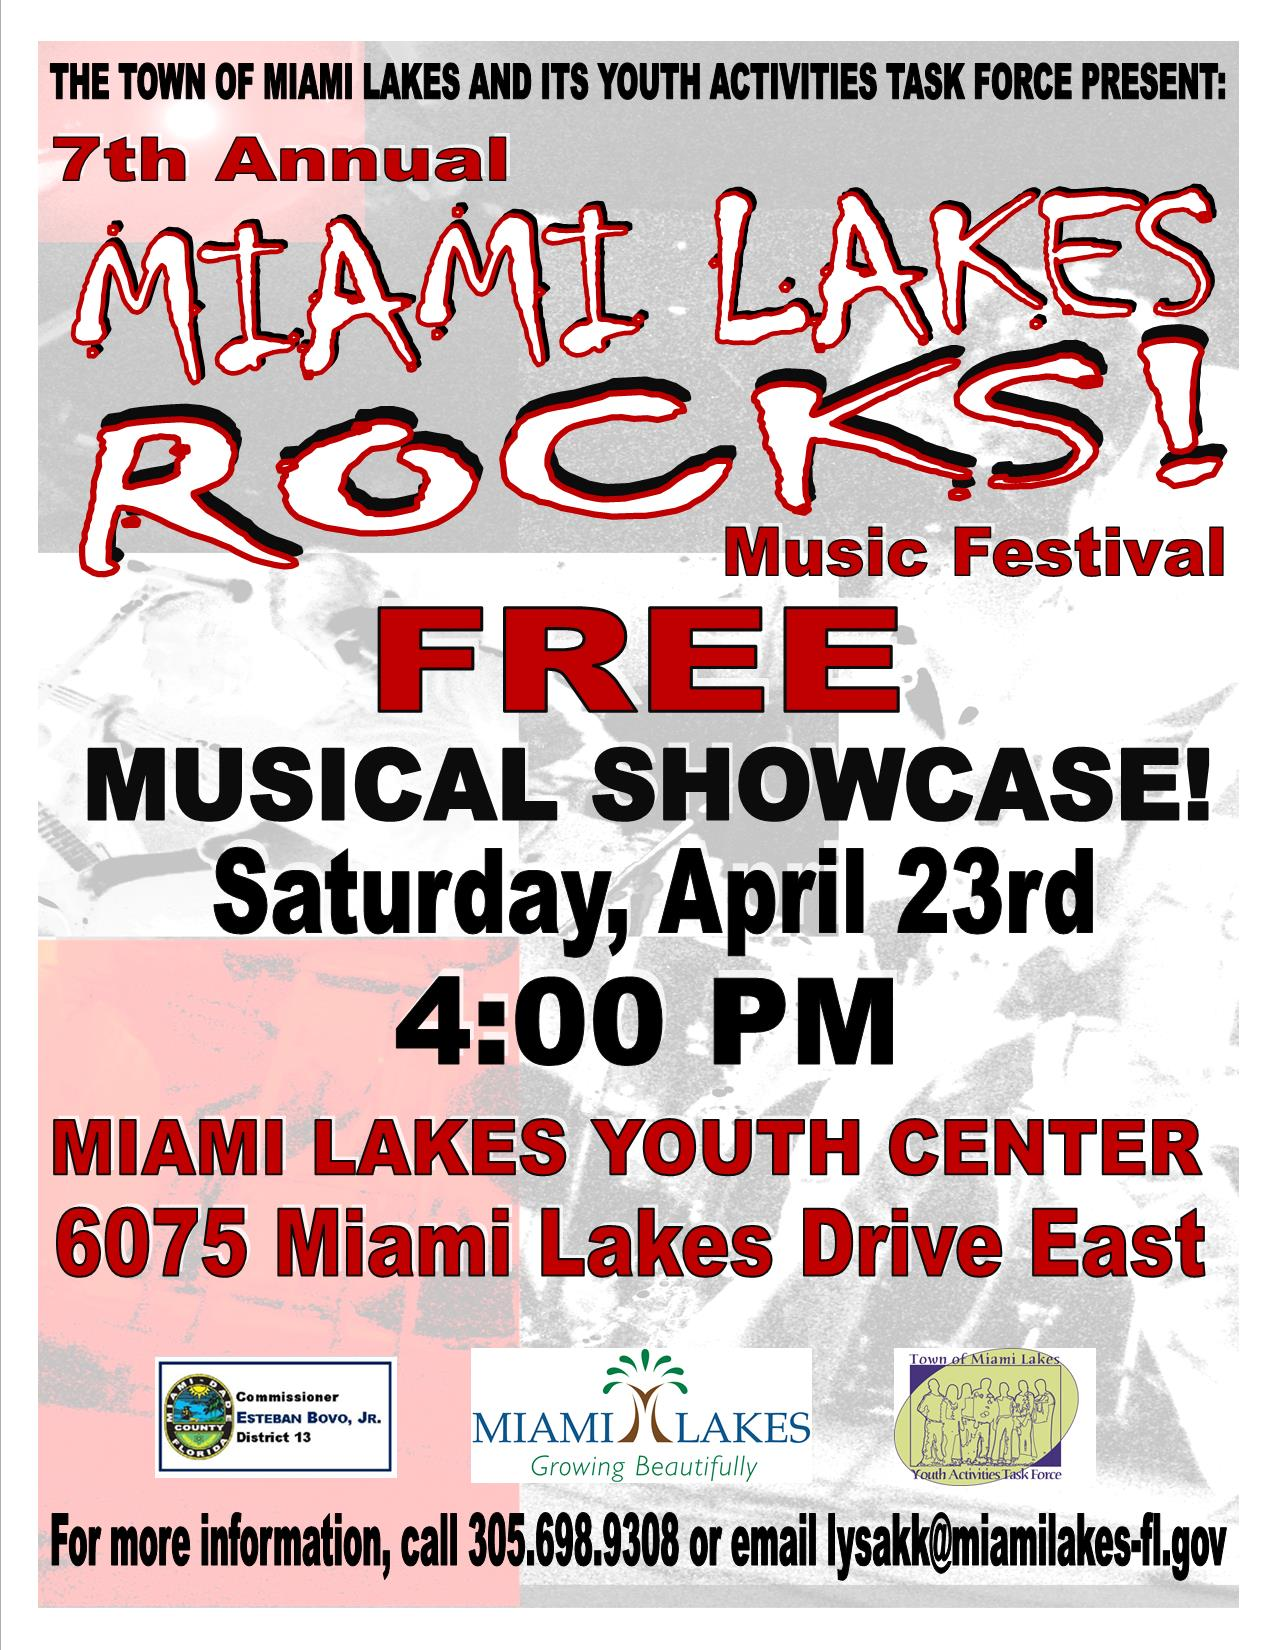 Miami Lakes Rocks April 23 2016 Flyer